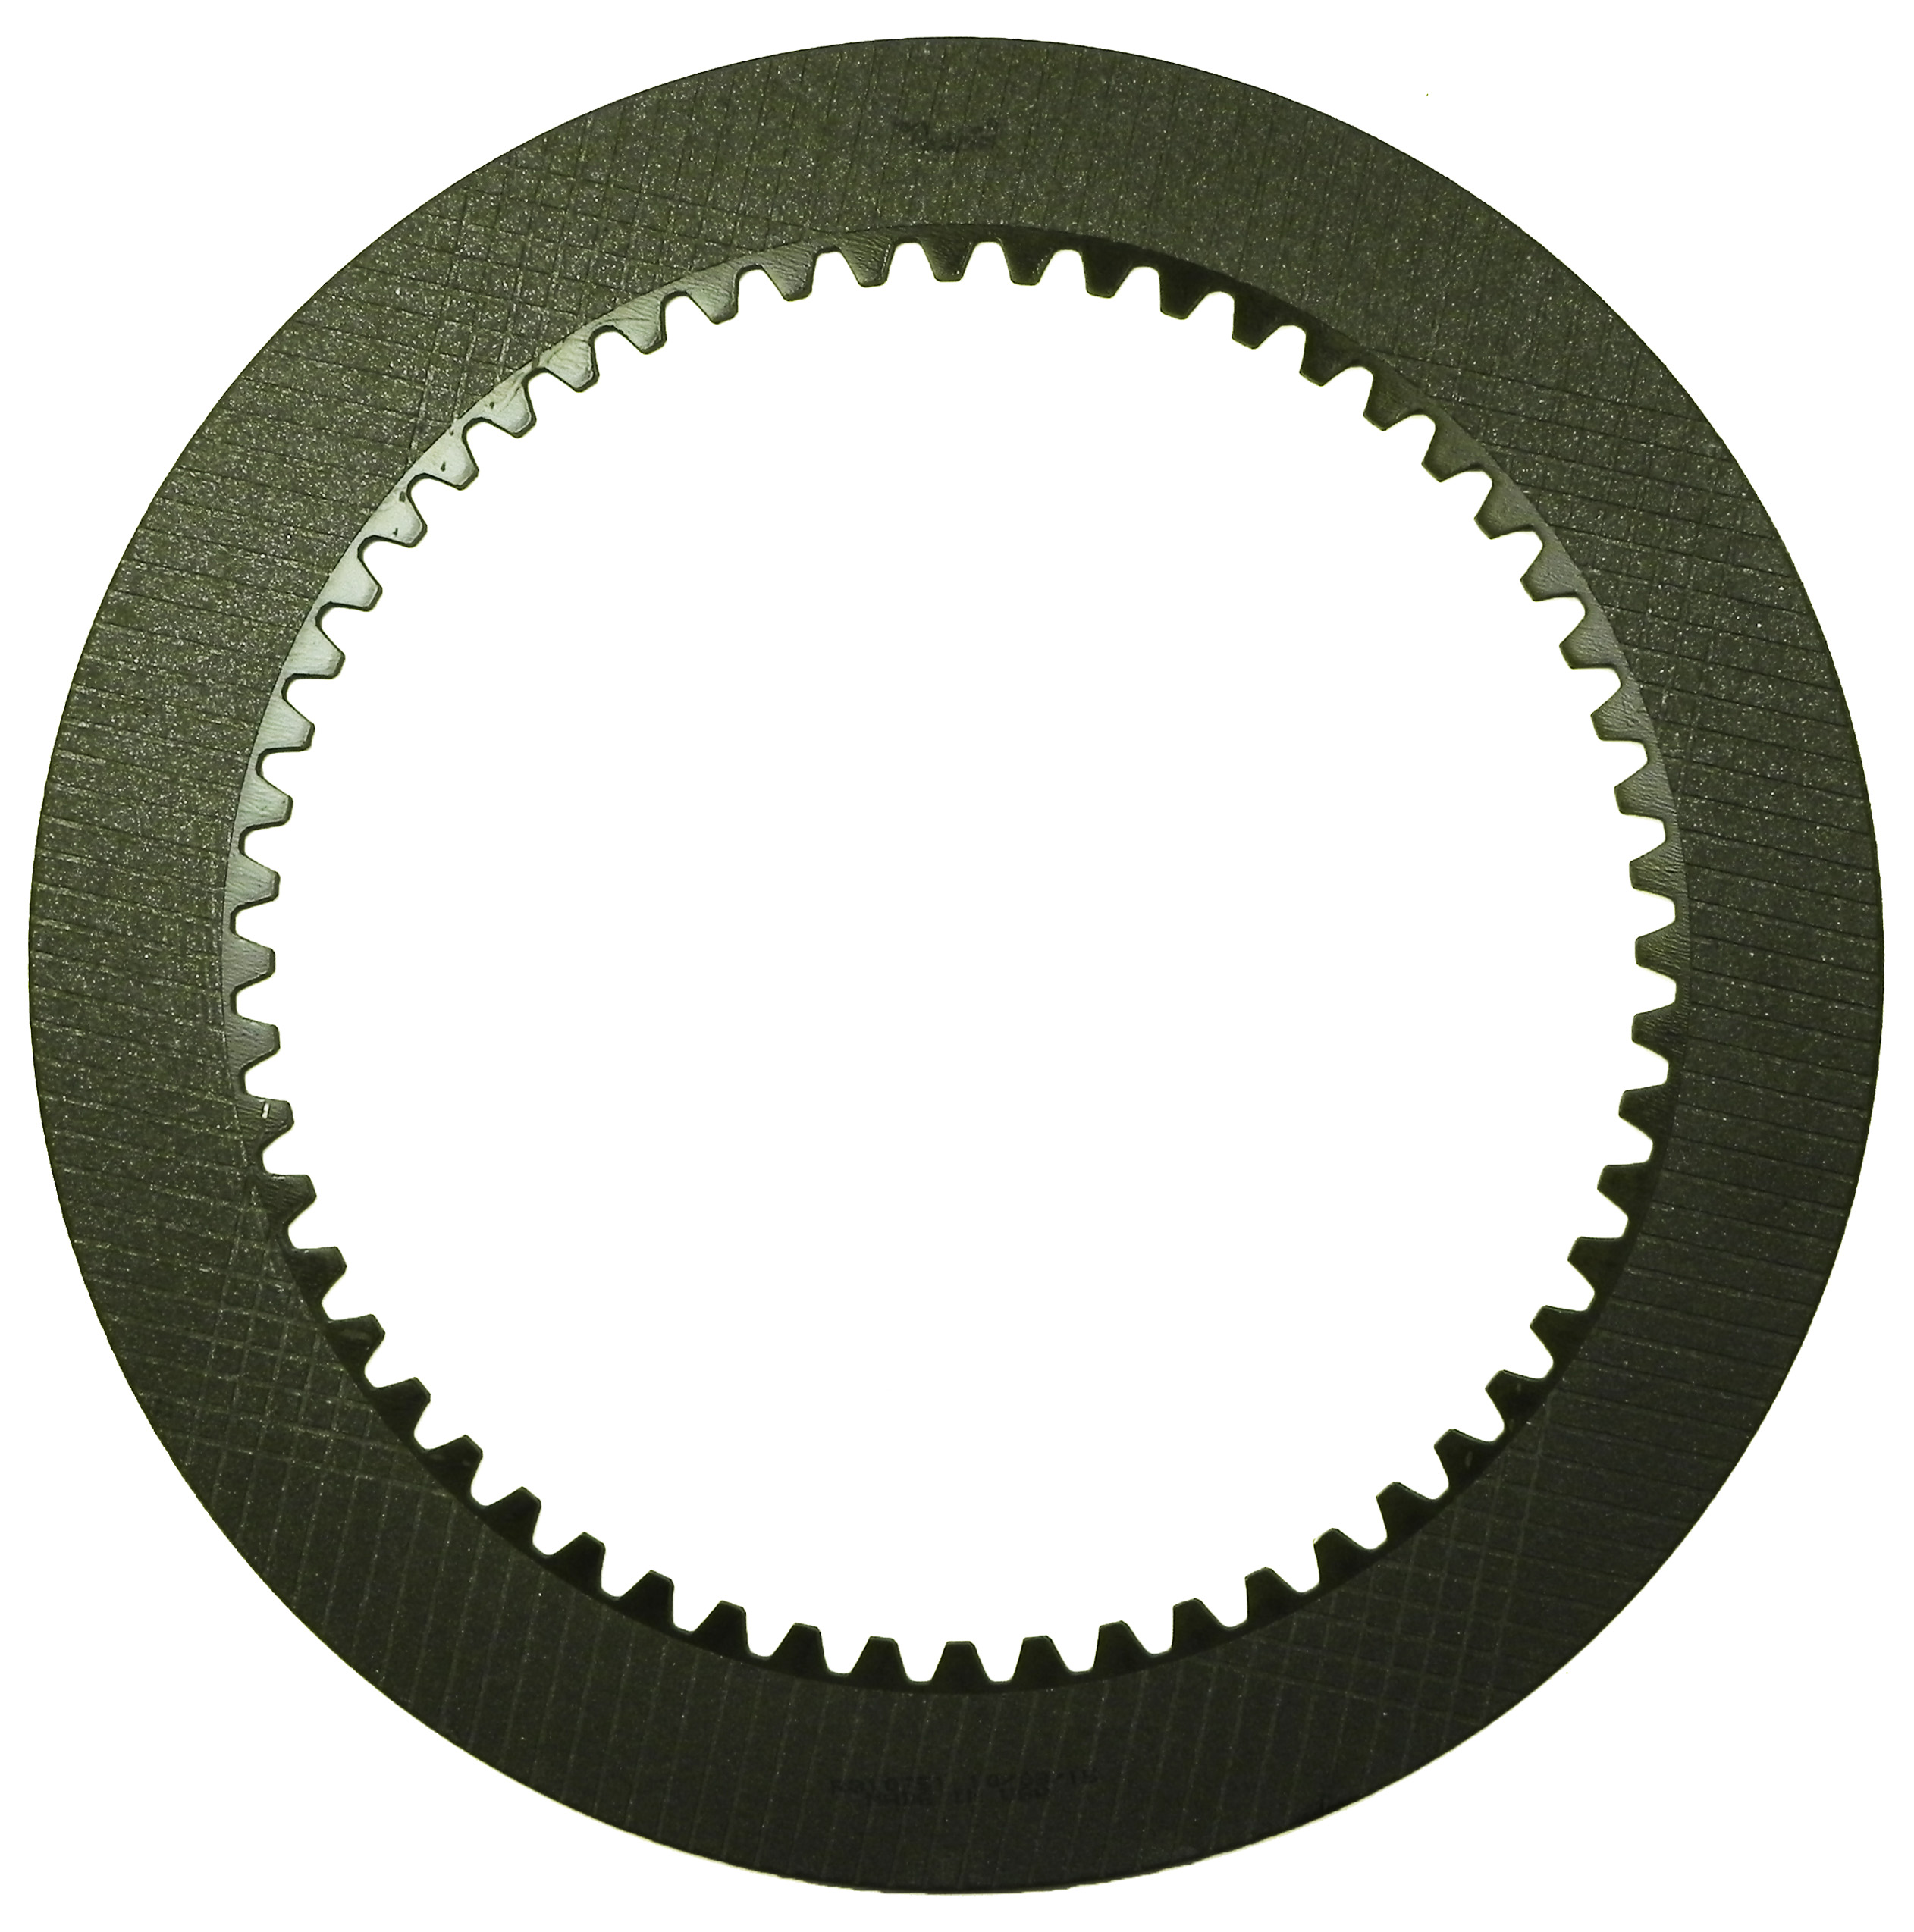 R810751 | 1972-ON Friction Clutch Plate Graphitic Lockup Graphitic; Except MT644, MT654